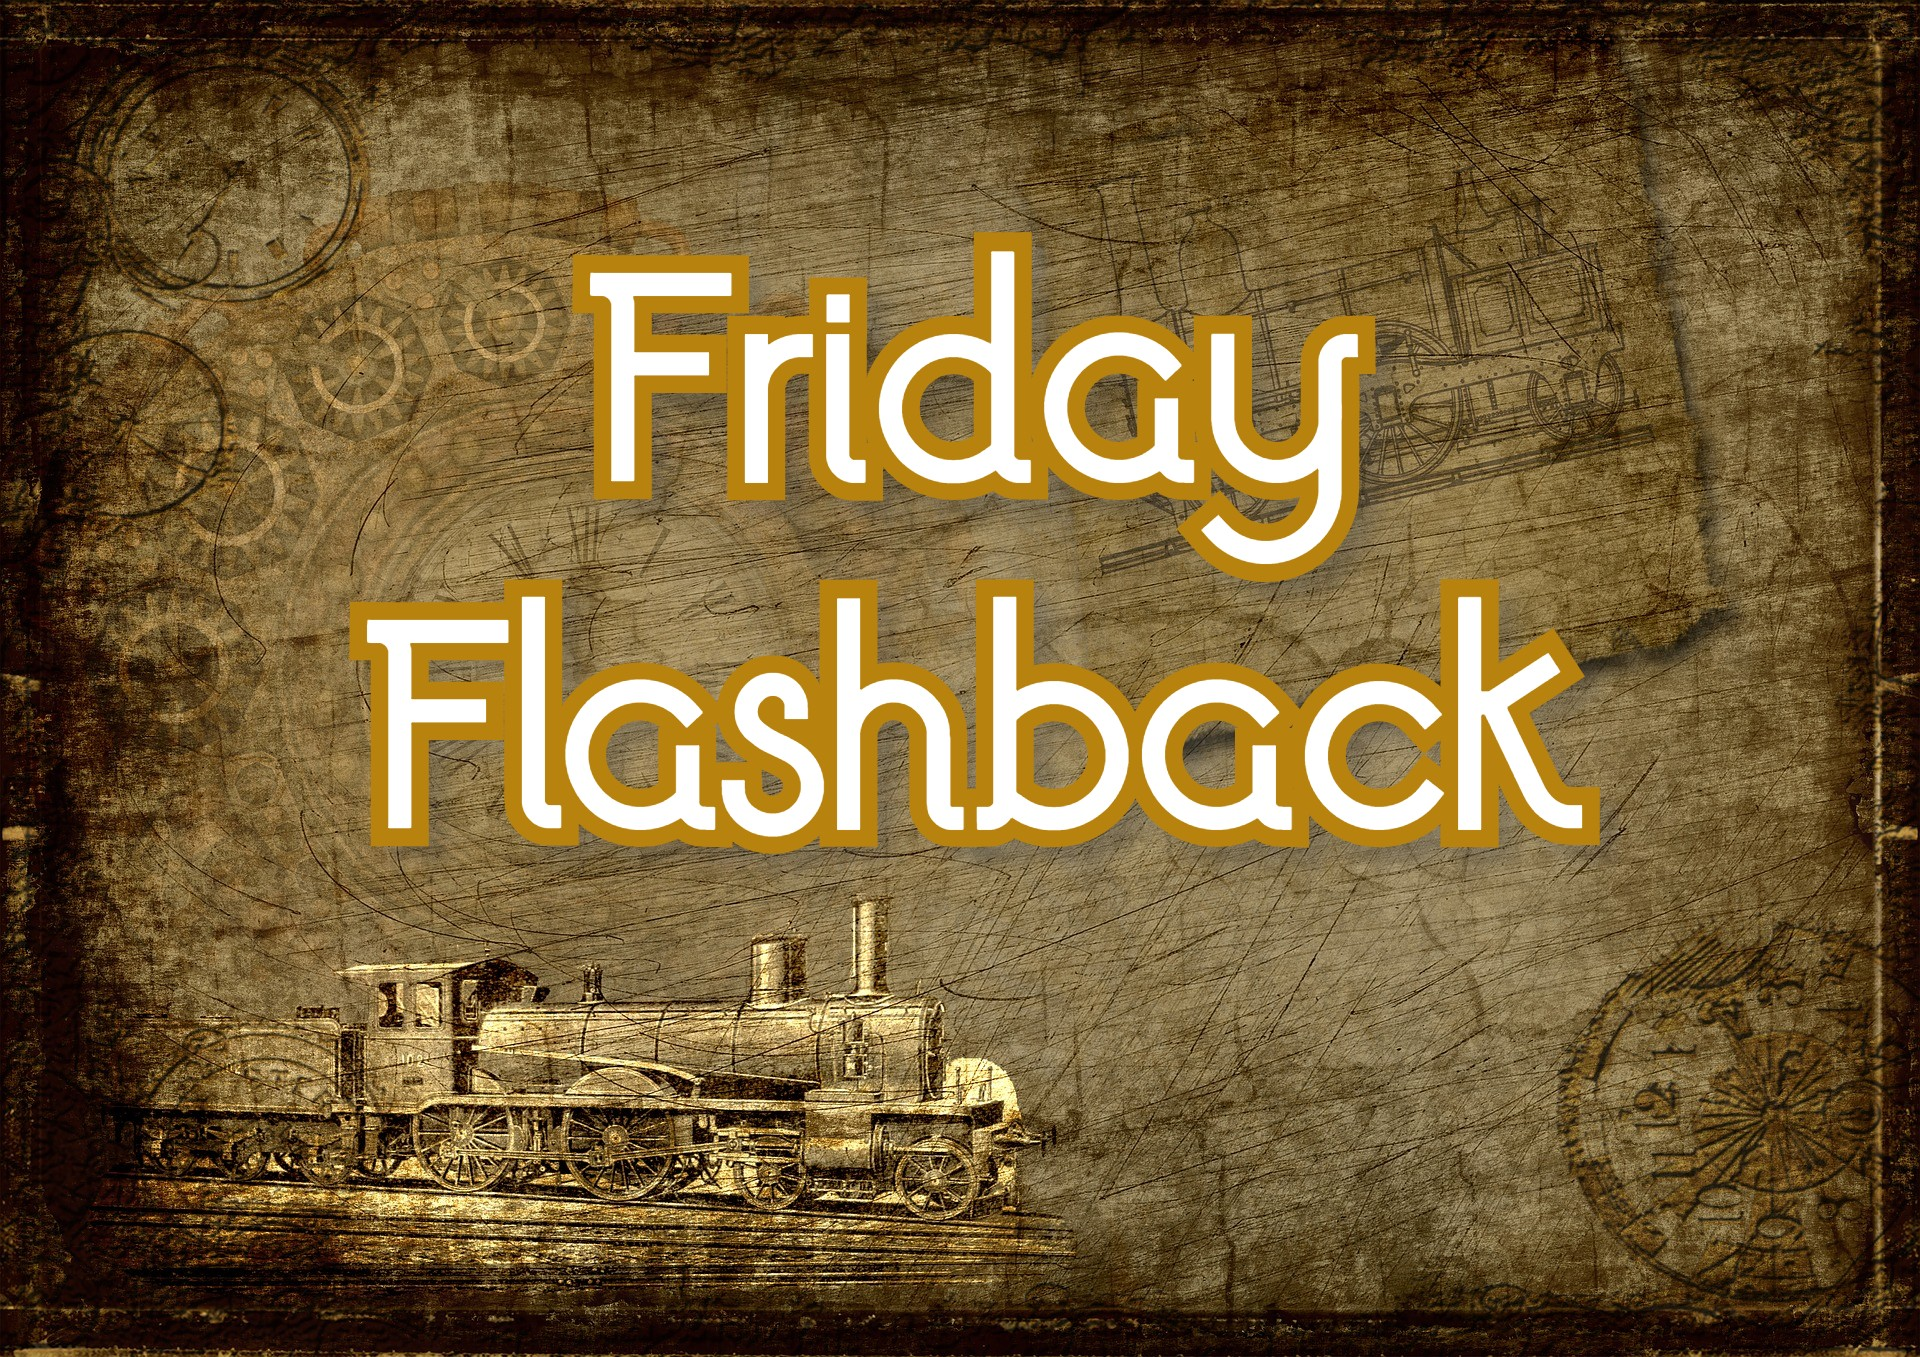 Friday Flashback logo